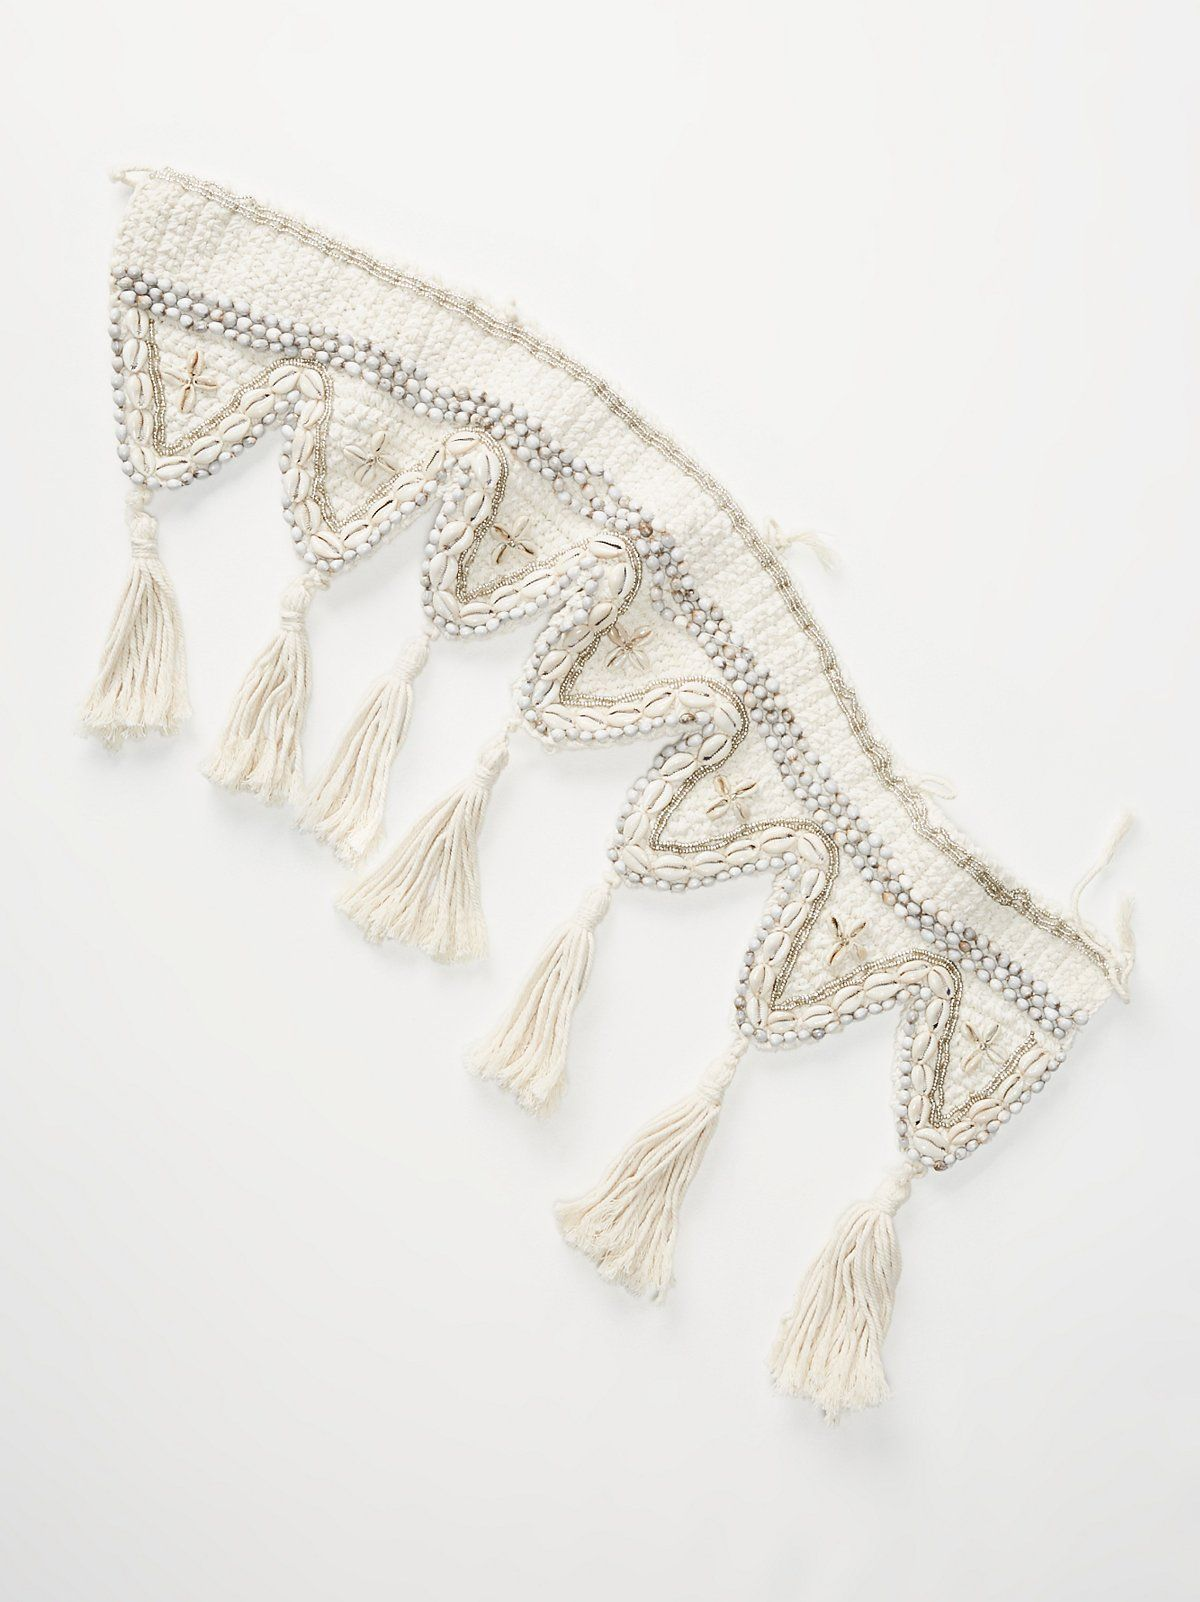 Ocean Bound Macrame Shell Garland | Add a beachy vibe to your holiday décor with this woven macramé garland featuring stunning bead and shell accents throughout. Large tassels hang from the trim.